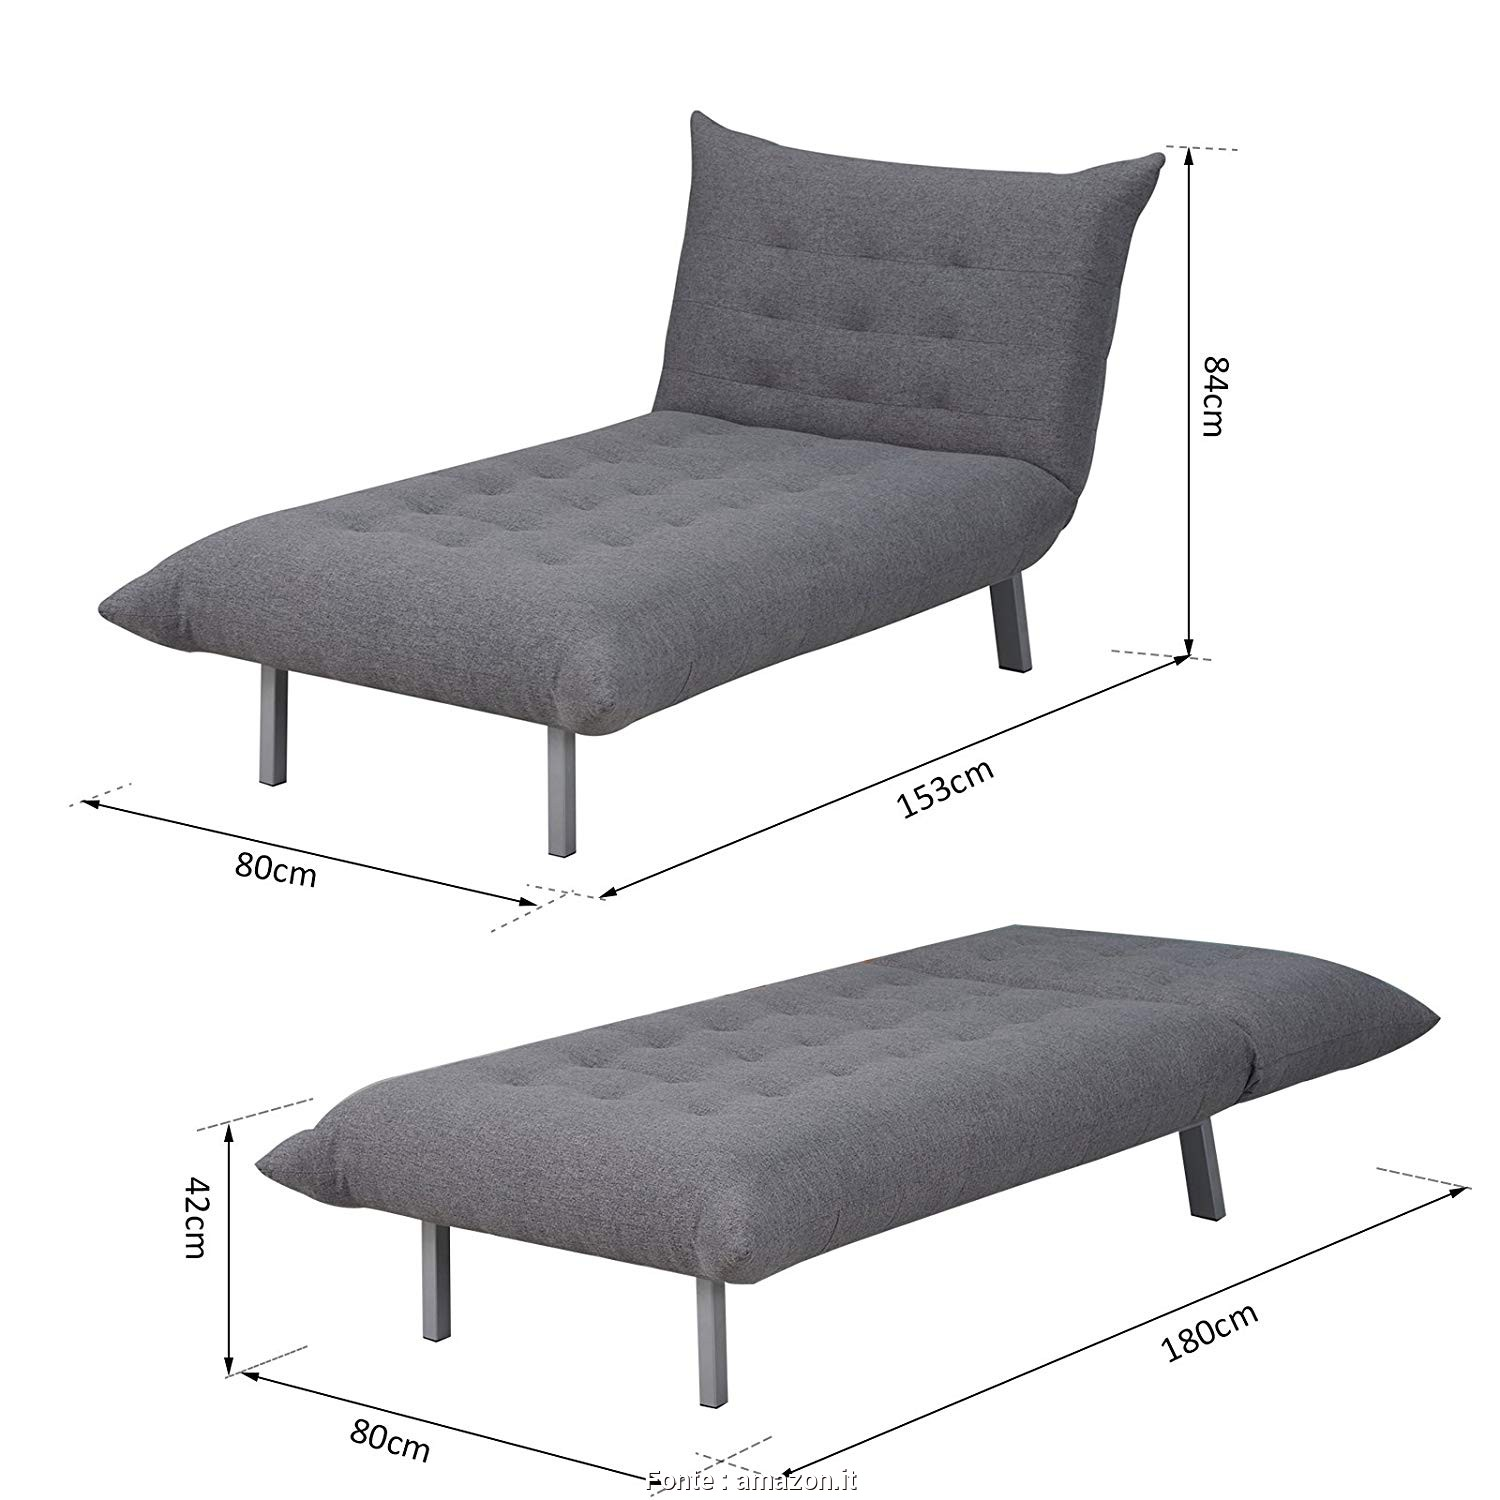 Divano, Cm, Chaise Longue, Maestoso HOMCOM Poltrona Divano Chaise Lounge Letto Multifunzionale 2 In 1 Relax Tessuto Di Lino 80 ×, × 84Cm: Amazon.It: Commercio, Industria E Scienza